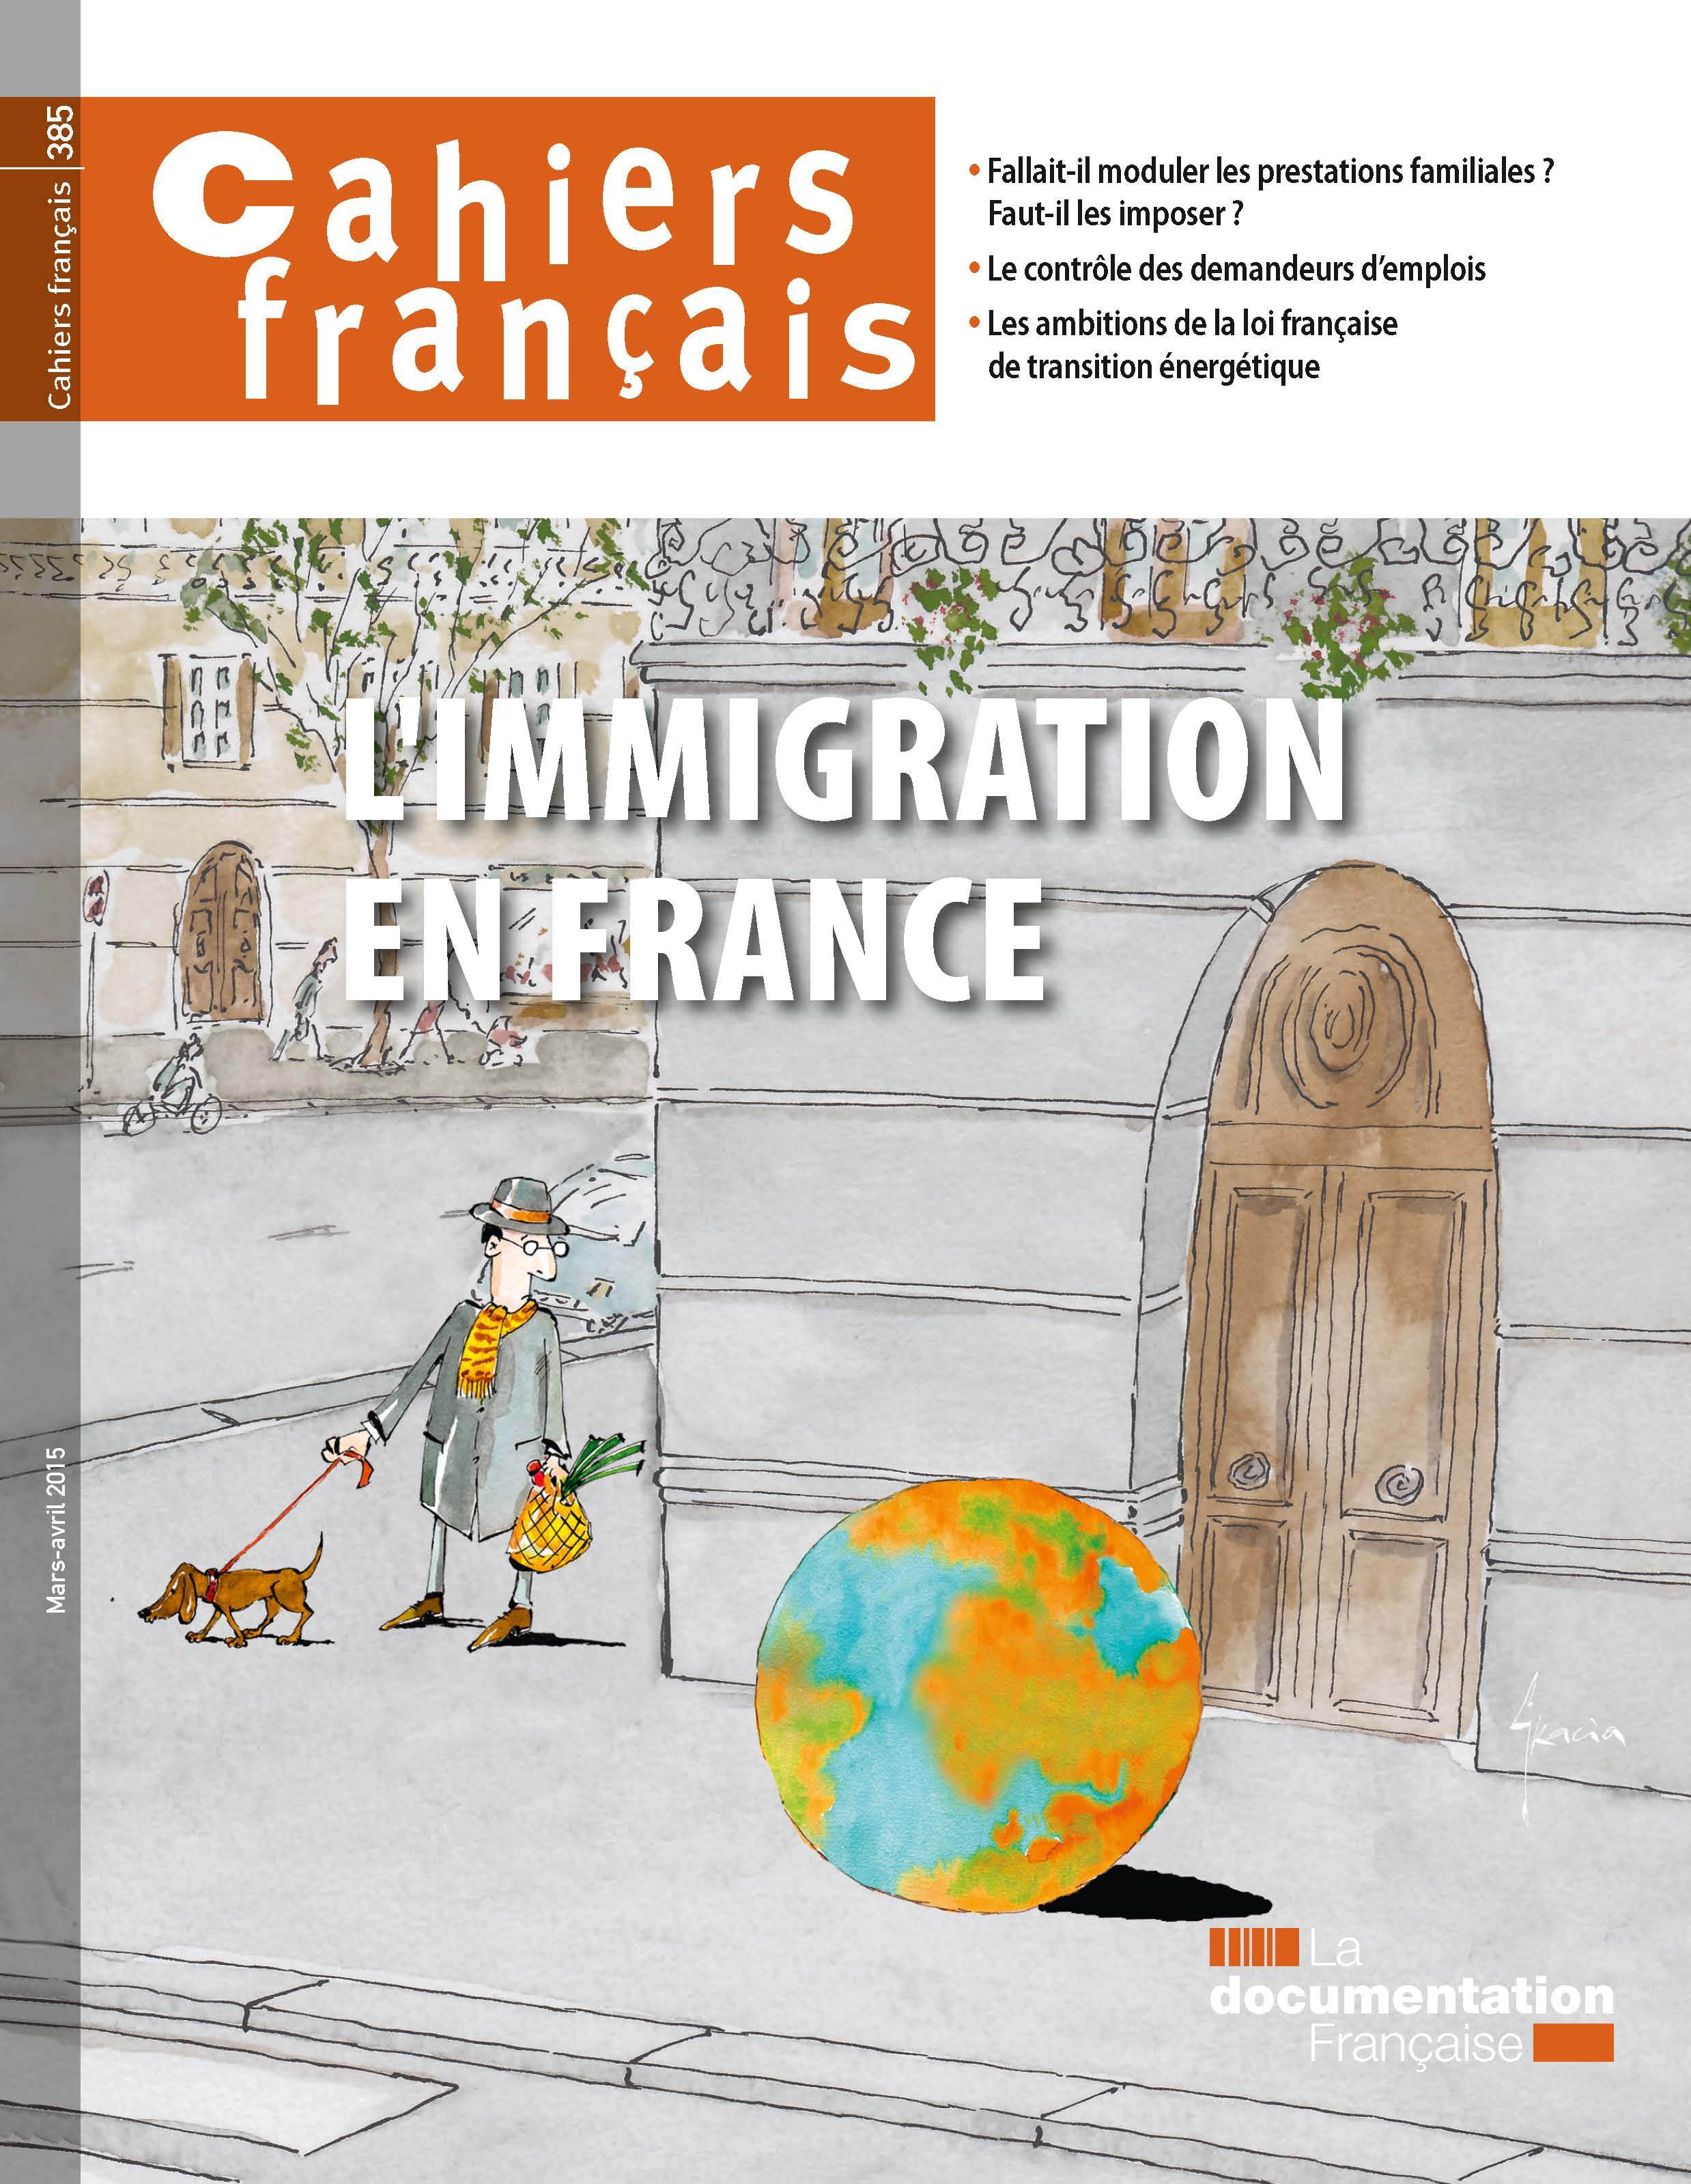 L'IMMIGRATION EN FRANCE - CF N 385 MARS-AVRIL 2015